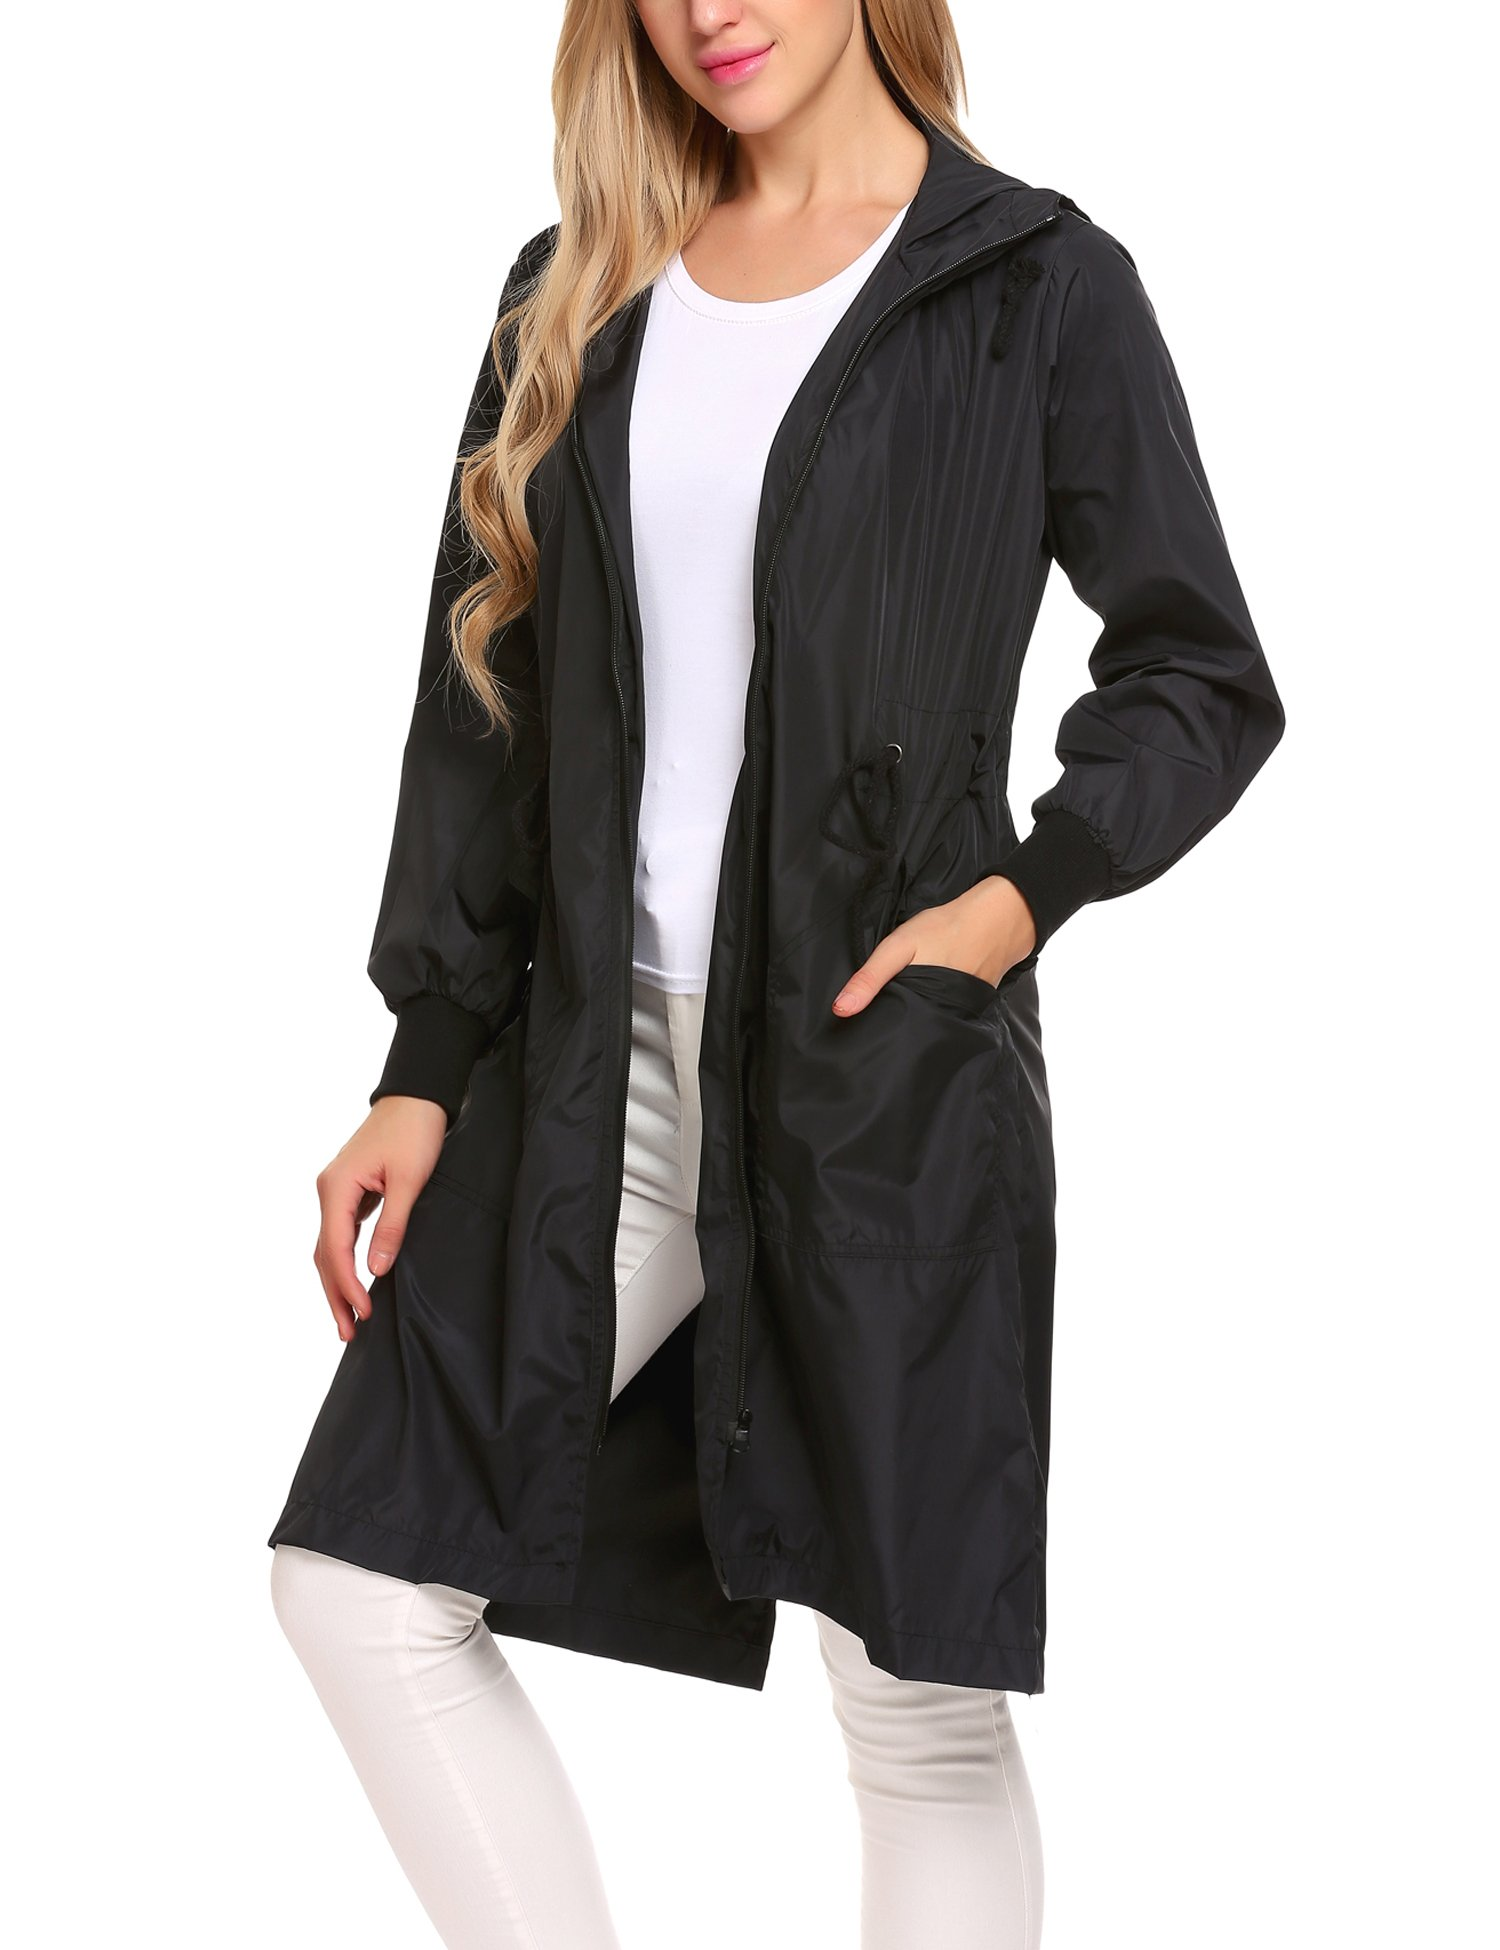 Zeagoo Women's Raincoat Durable Unisex Men Women Rain Poncho With Hat Hood For Outdoor Travel, Black, Medium